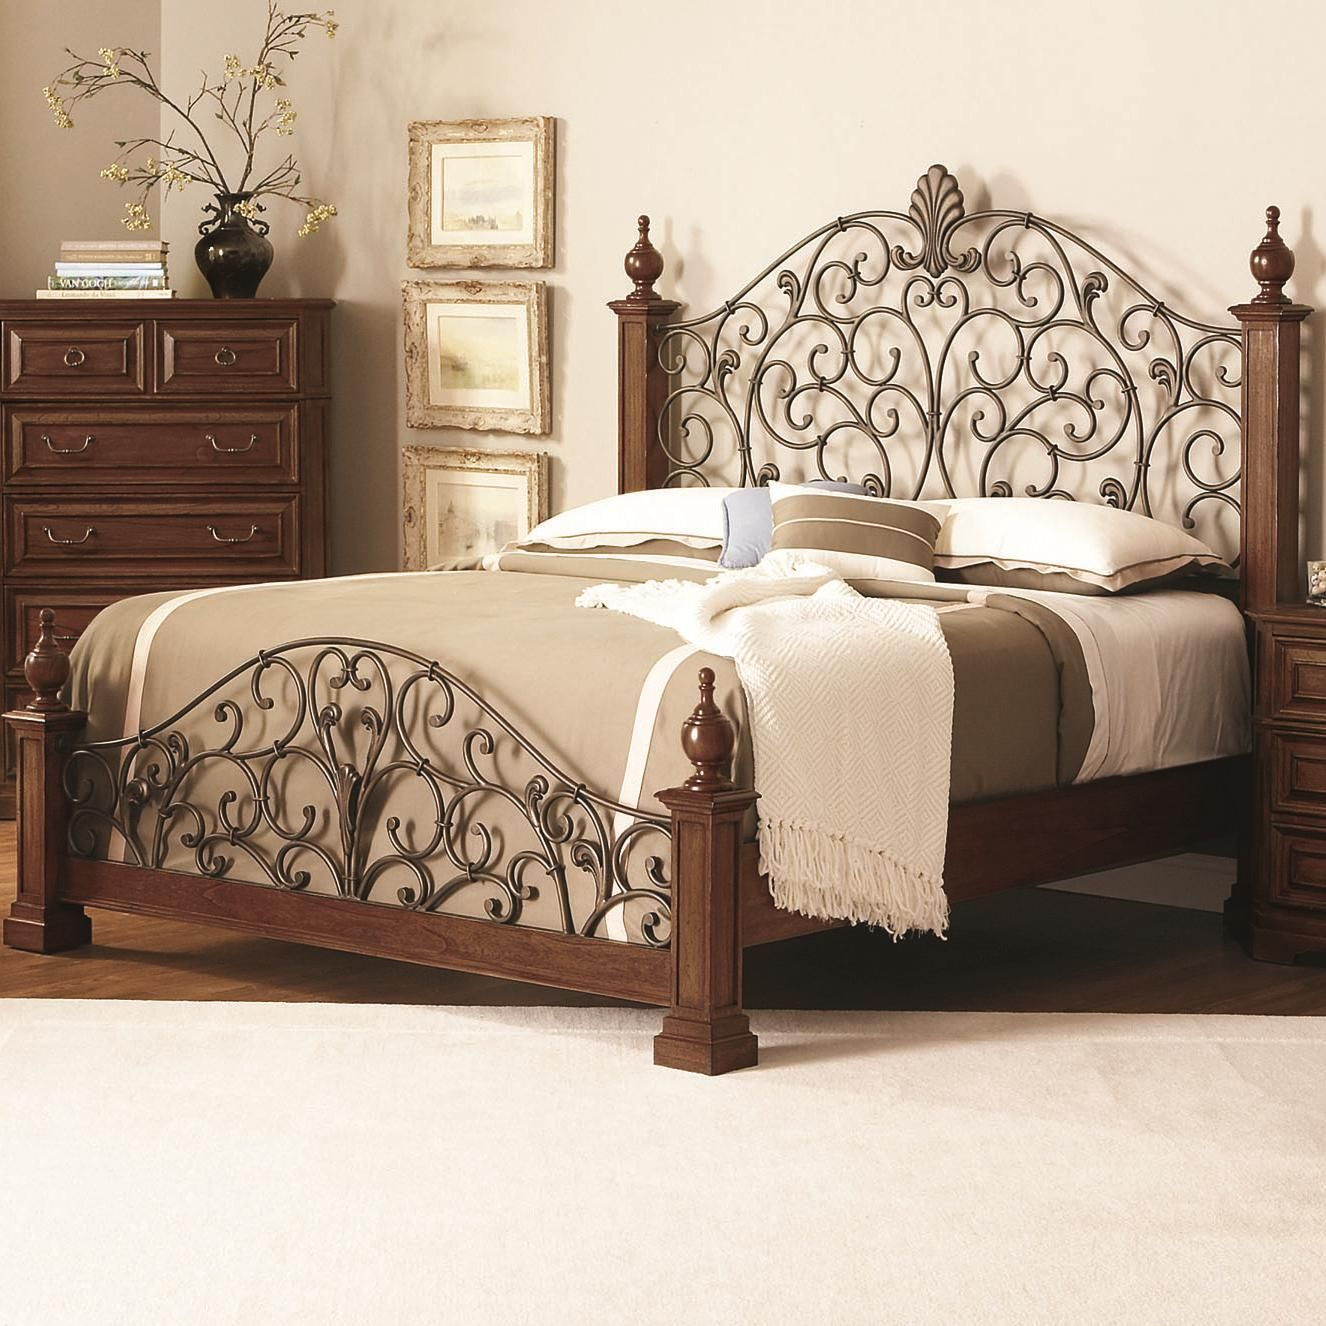 Edgewood King Poster Bed by Coaster Furniture, Home